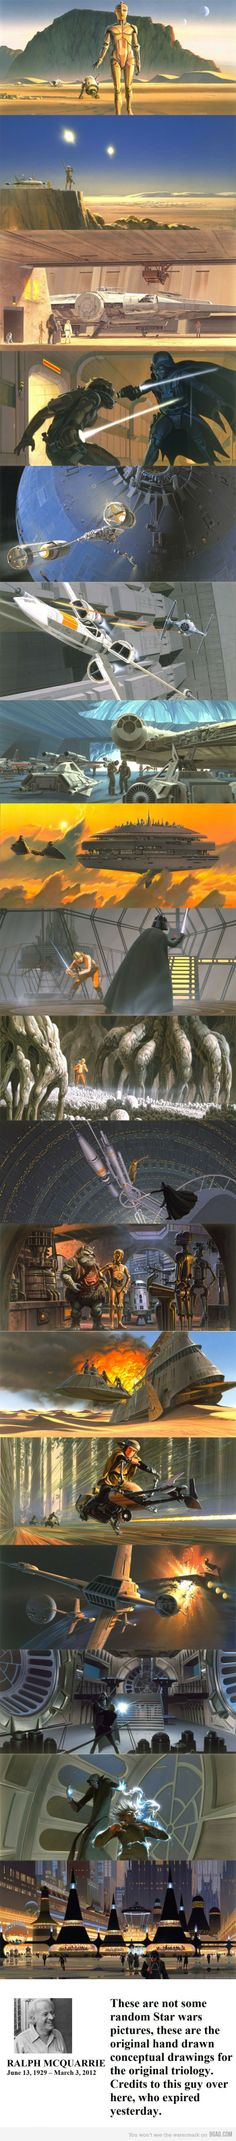 Star Wars hand-drawn conceptual drawings by Ralph McQuarrie (RIP) - Image found via 9gag. Link modified to refer to RMQ's website.